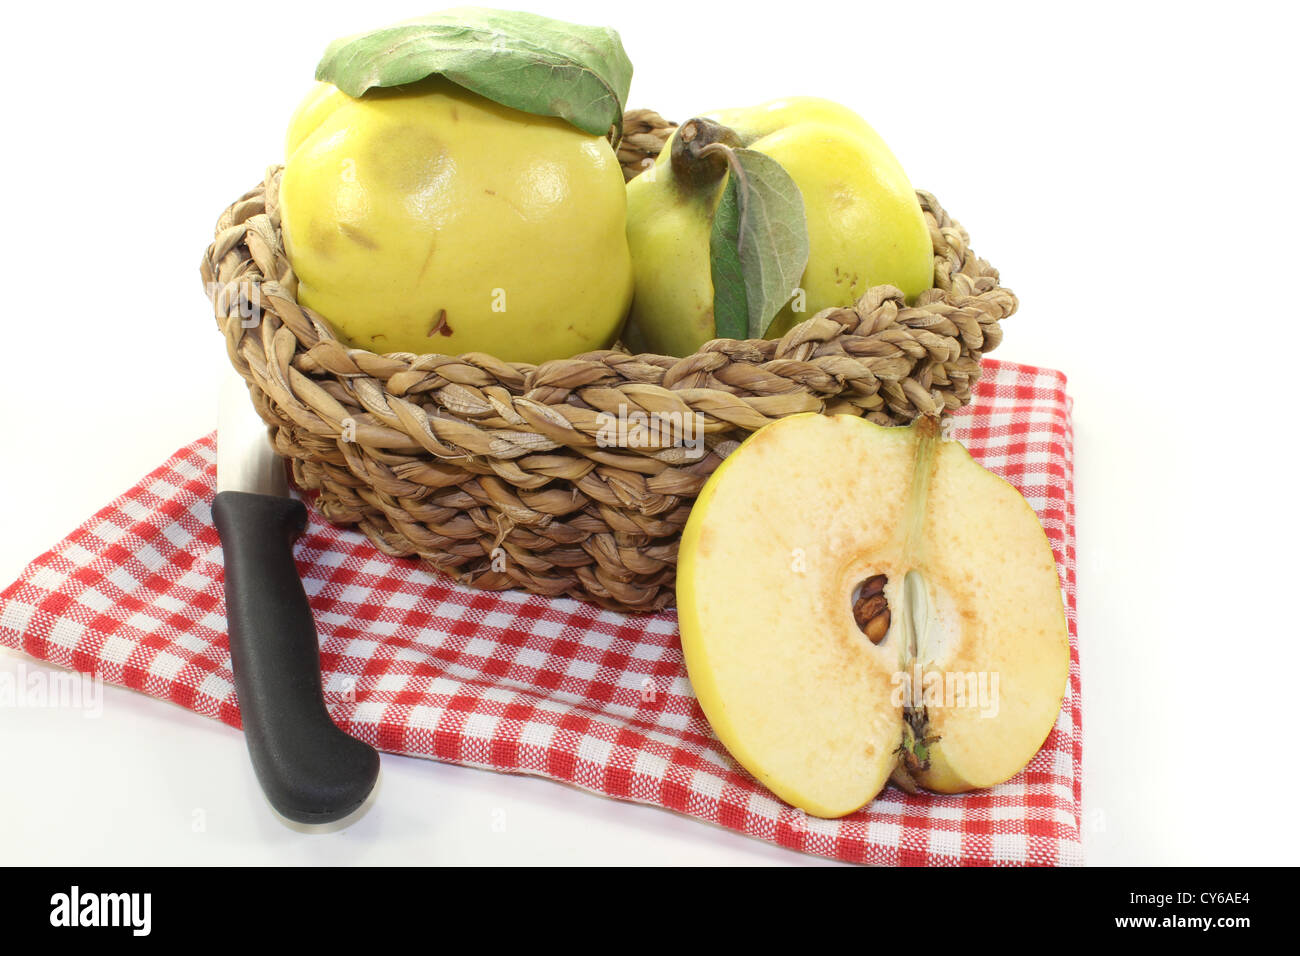 Quinces with leaves in a basket on a light background Stock Photo